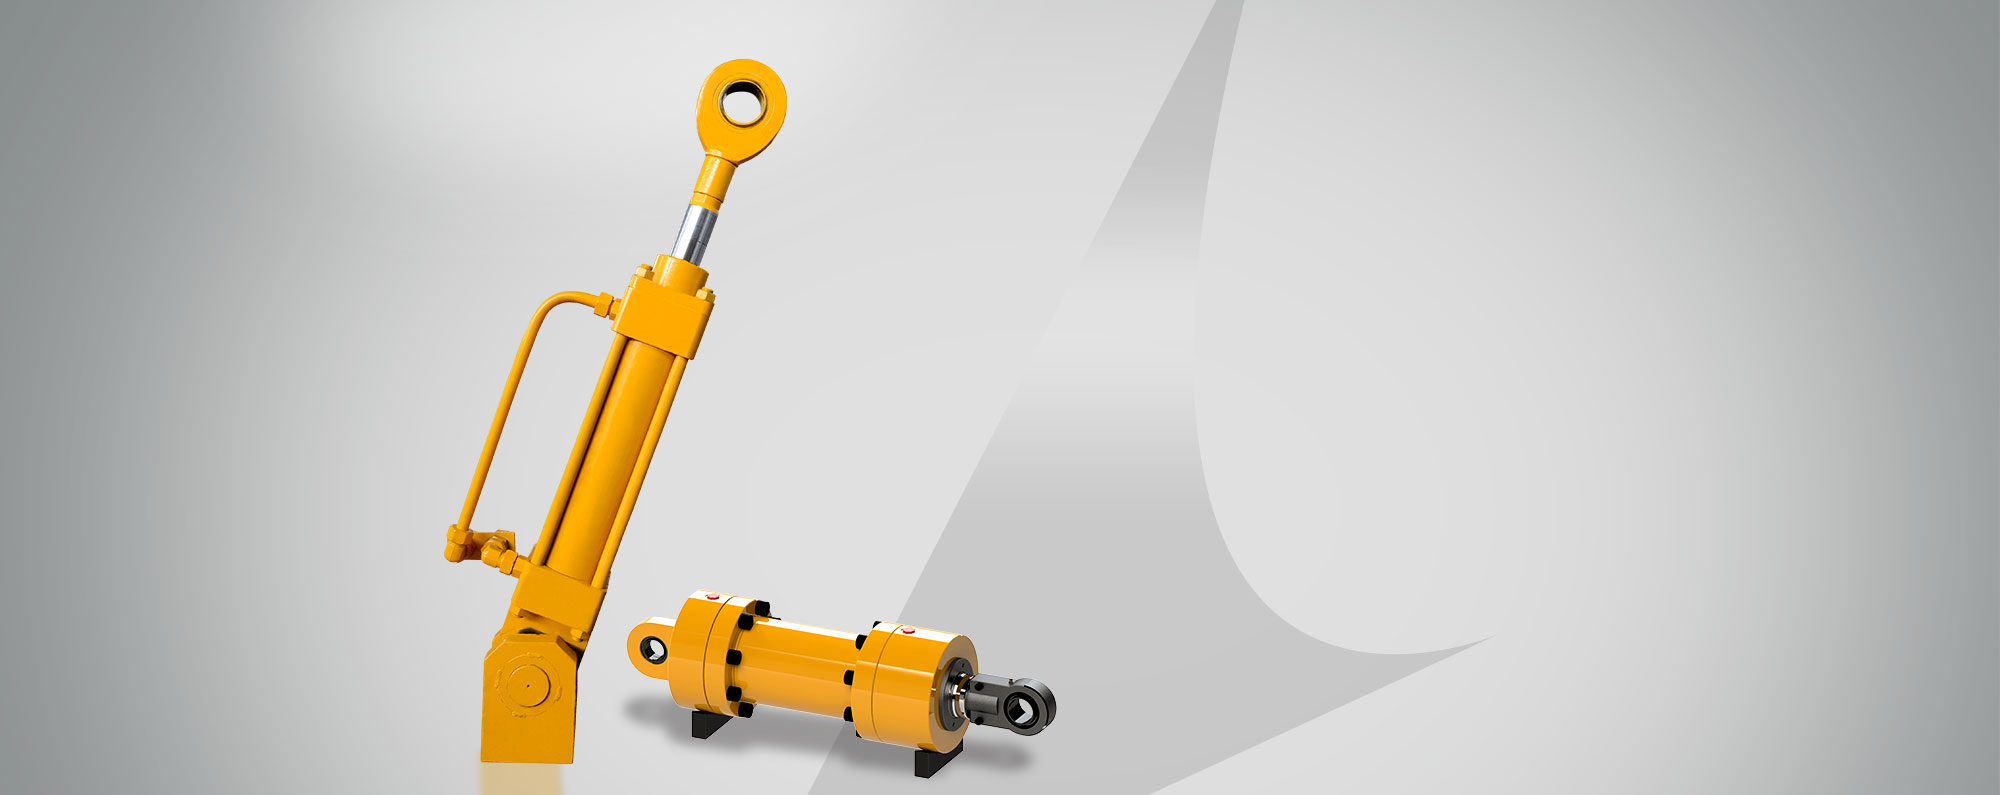 İş makinaları hidrolik silindirleri-Hydraulic cylinder for heavy construction equipment